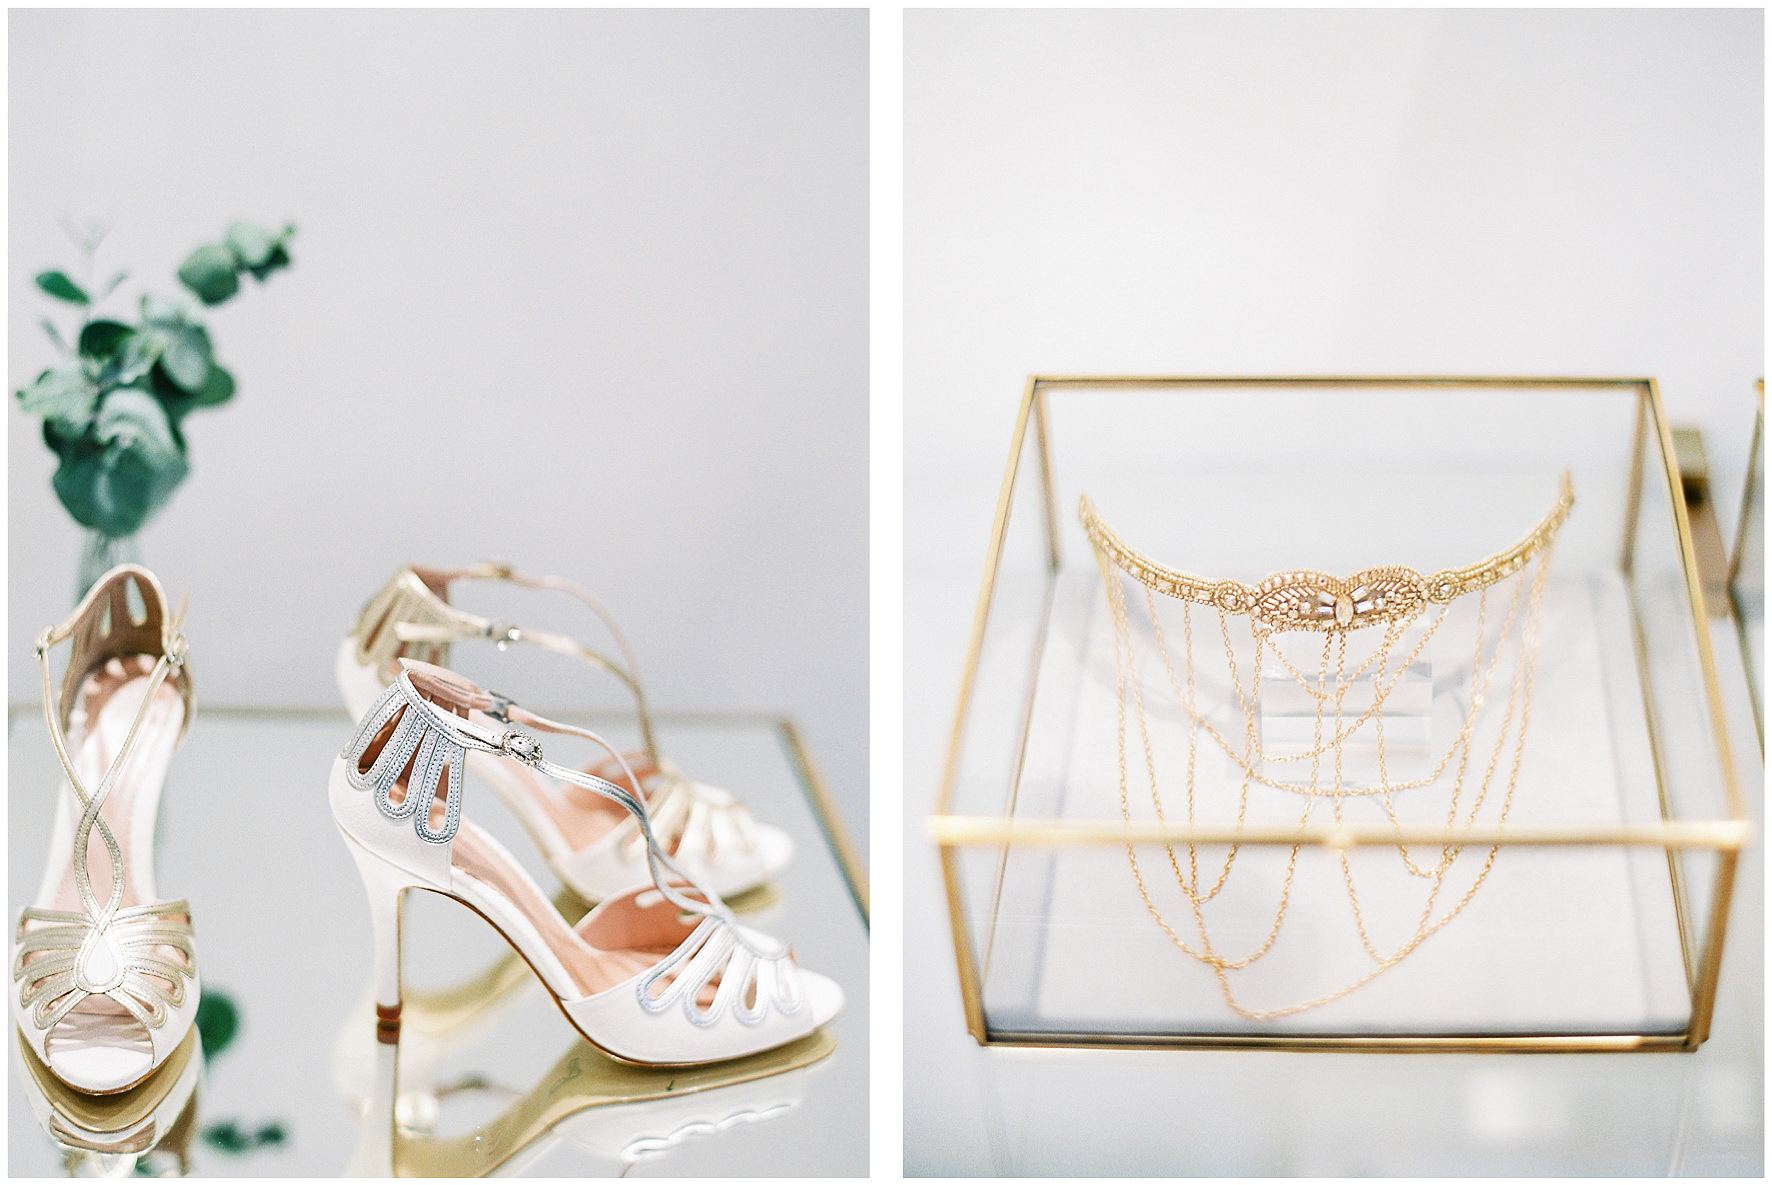 Emmy London, Emmy, Bridal shoes, boutique, wedding shoes, flagship store, Fulham Road, Chelsea Collection. Lucy Davenport Photography